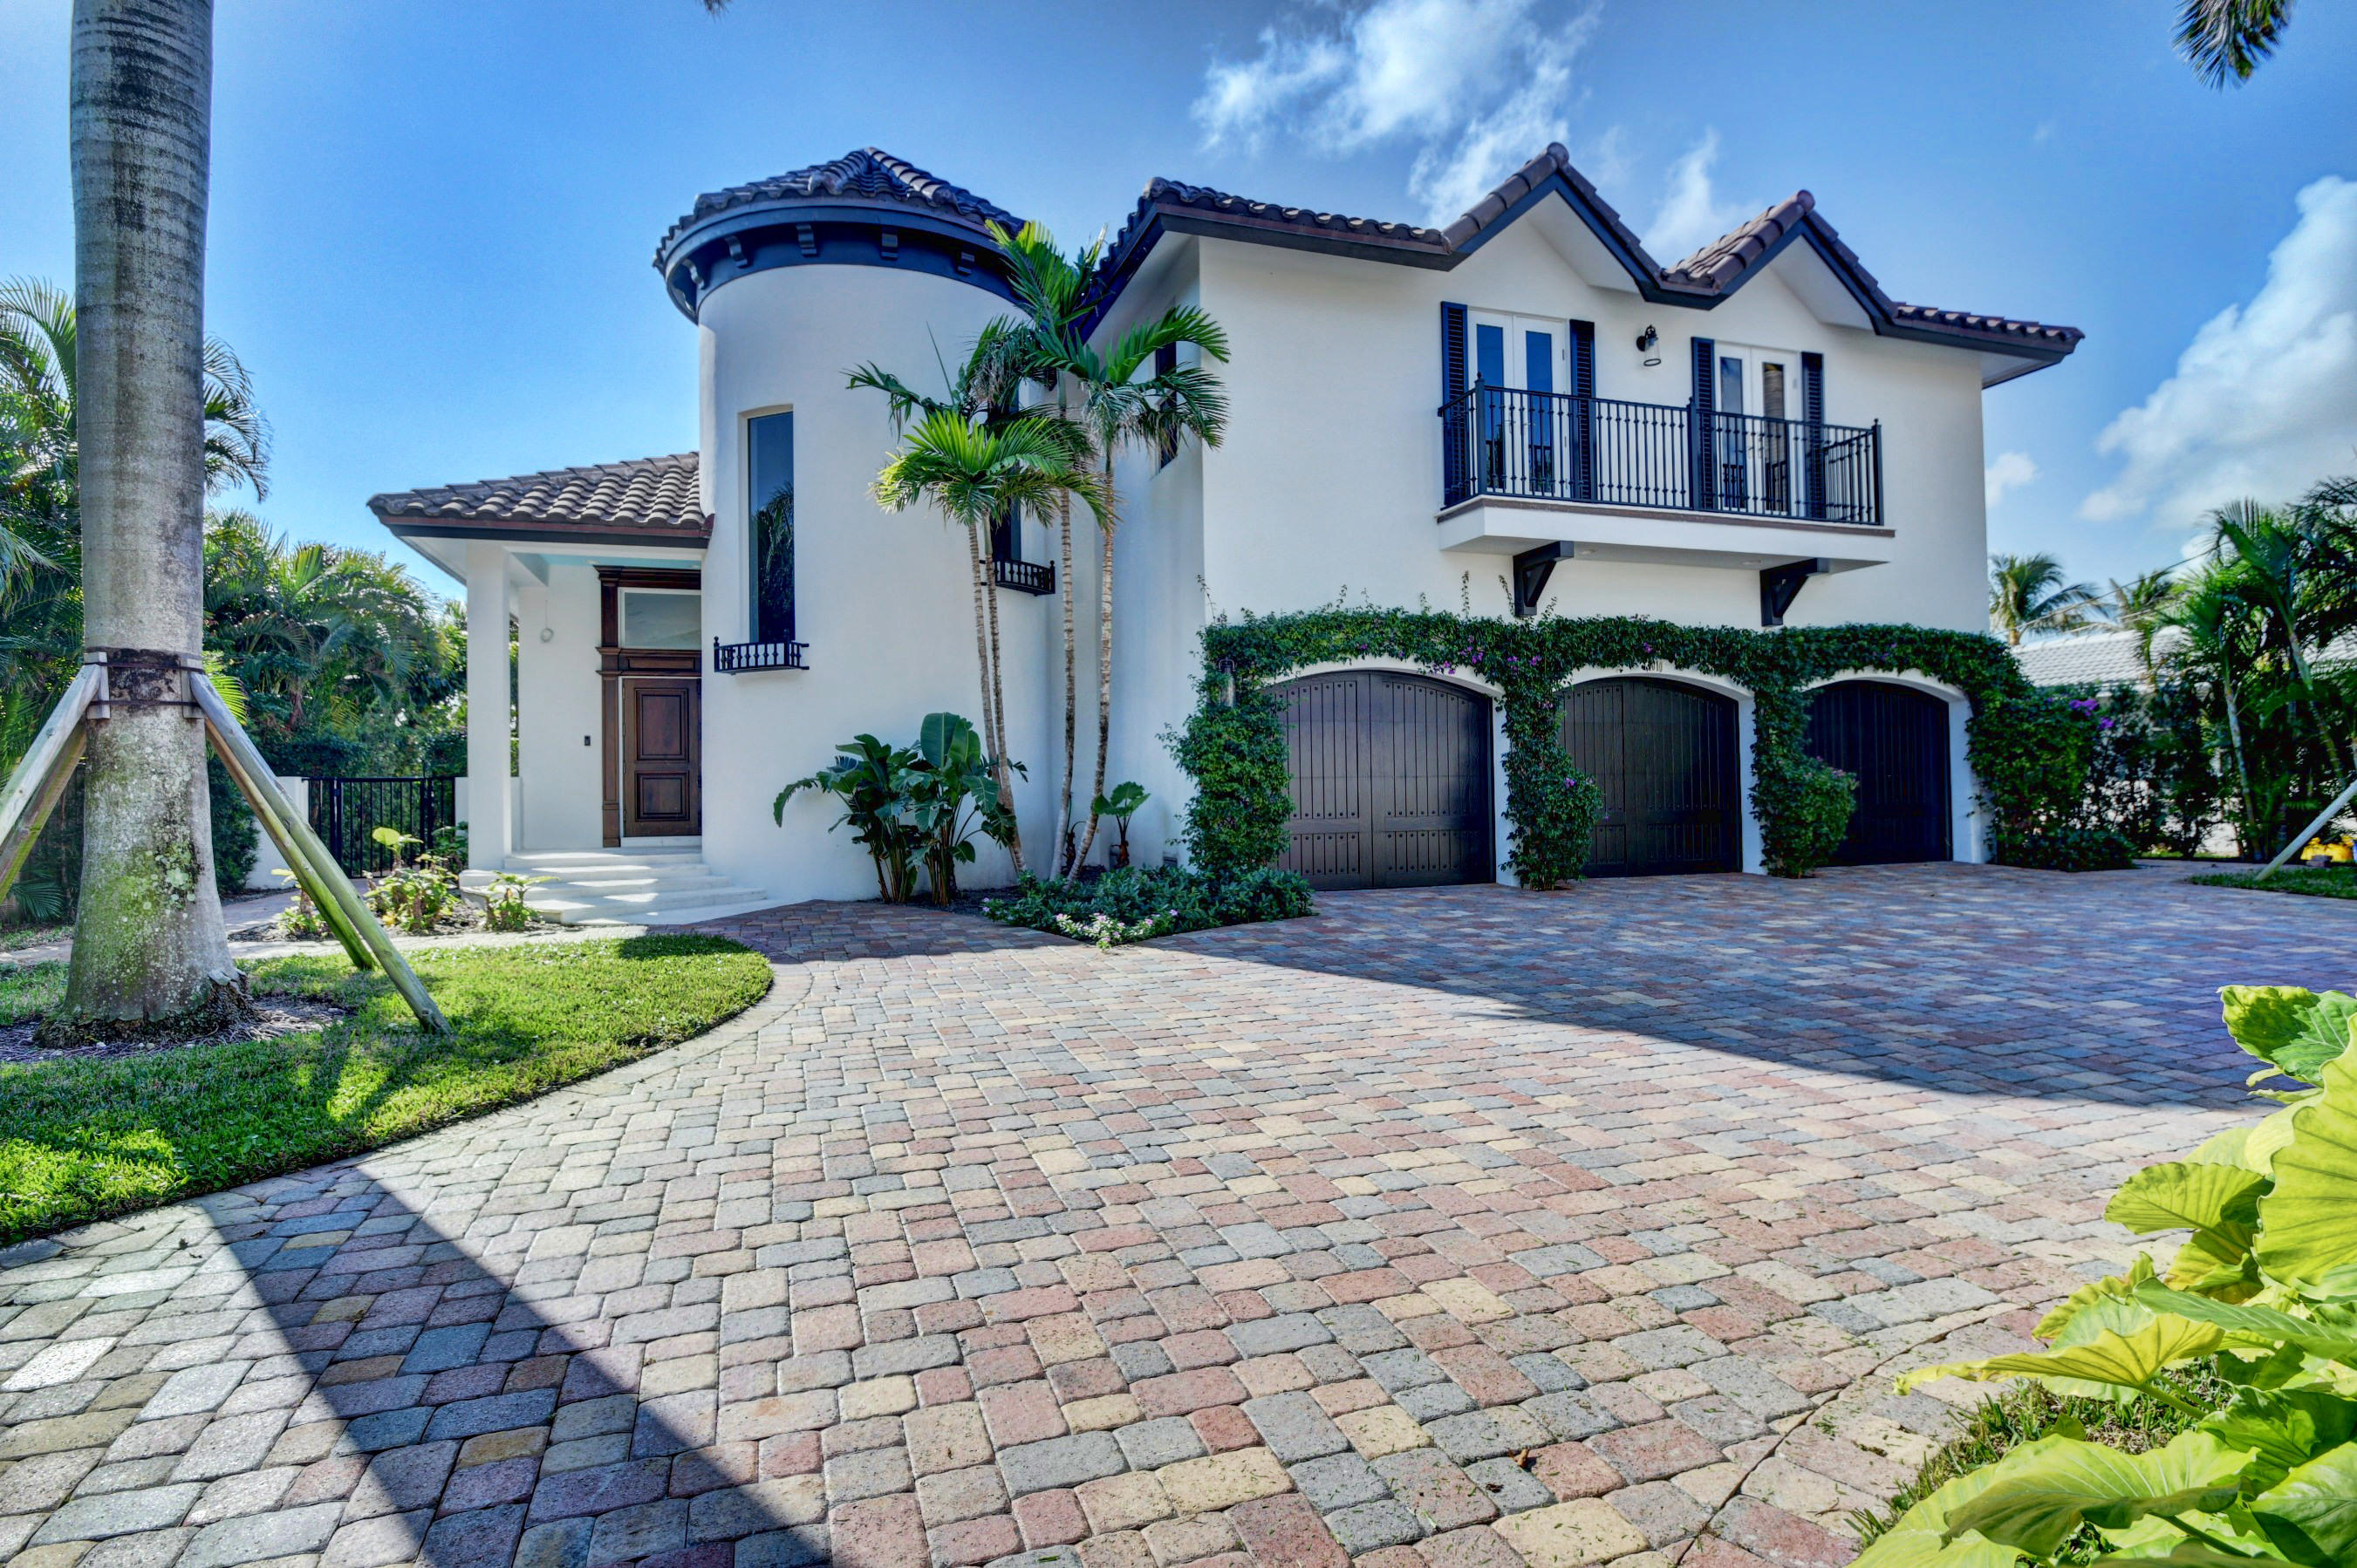 Home for sale in DELRAY BEACH SHORES Delray Beach Florida